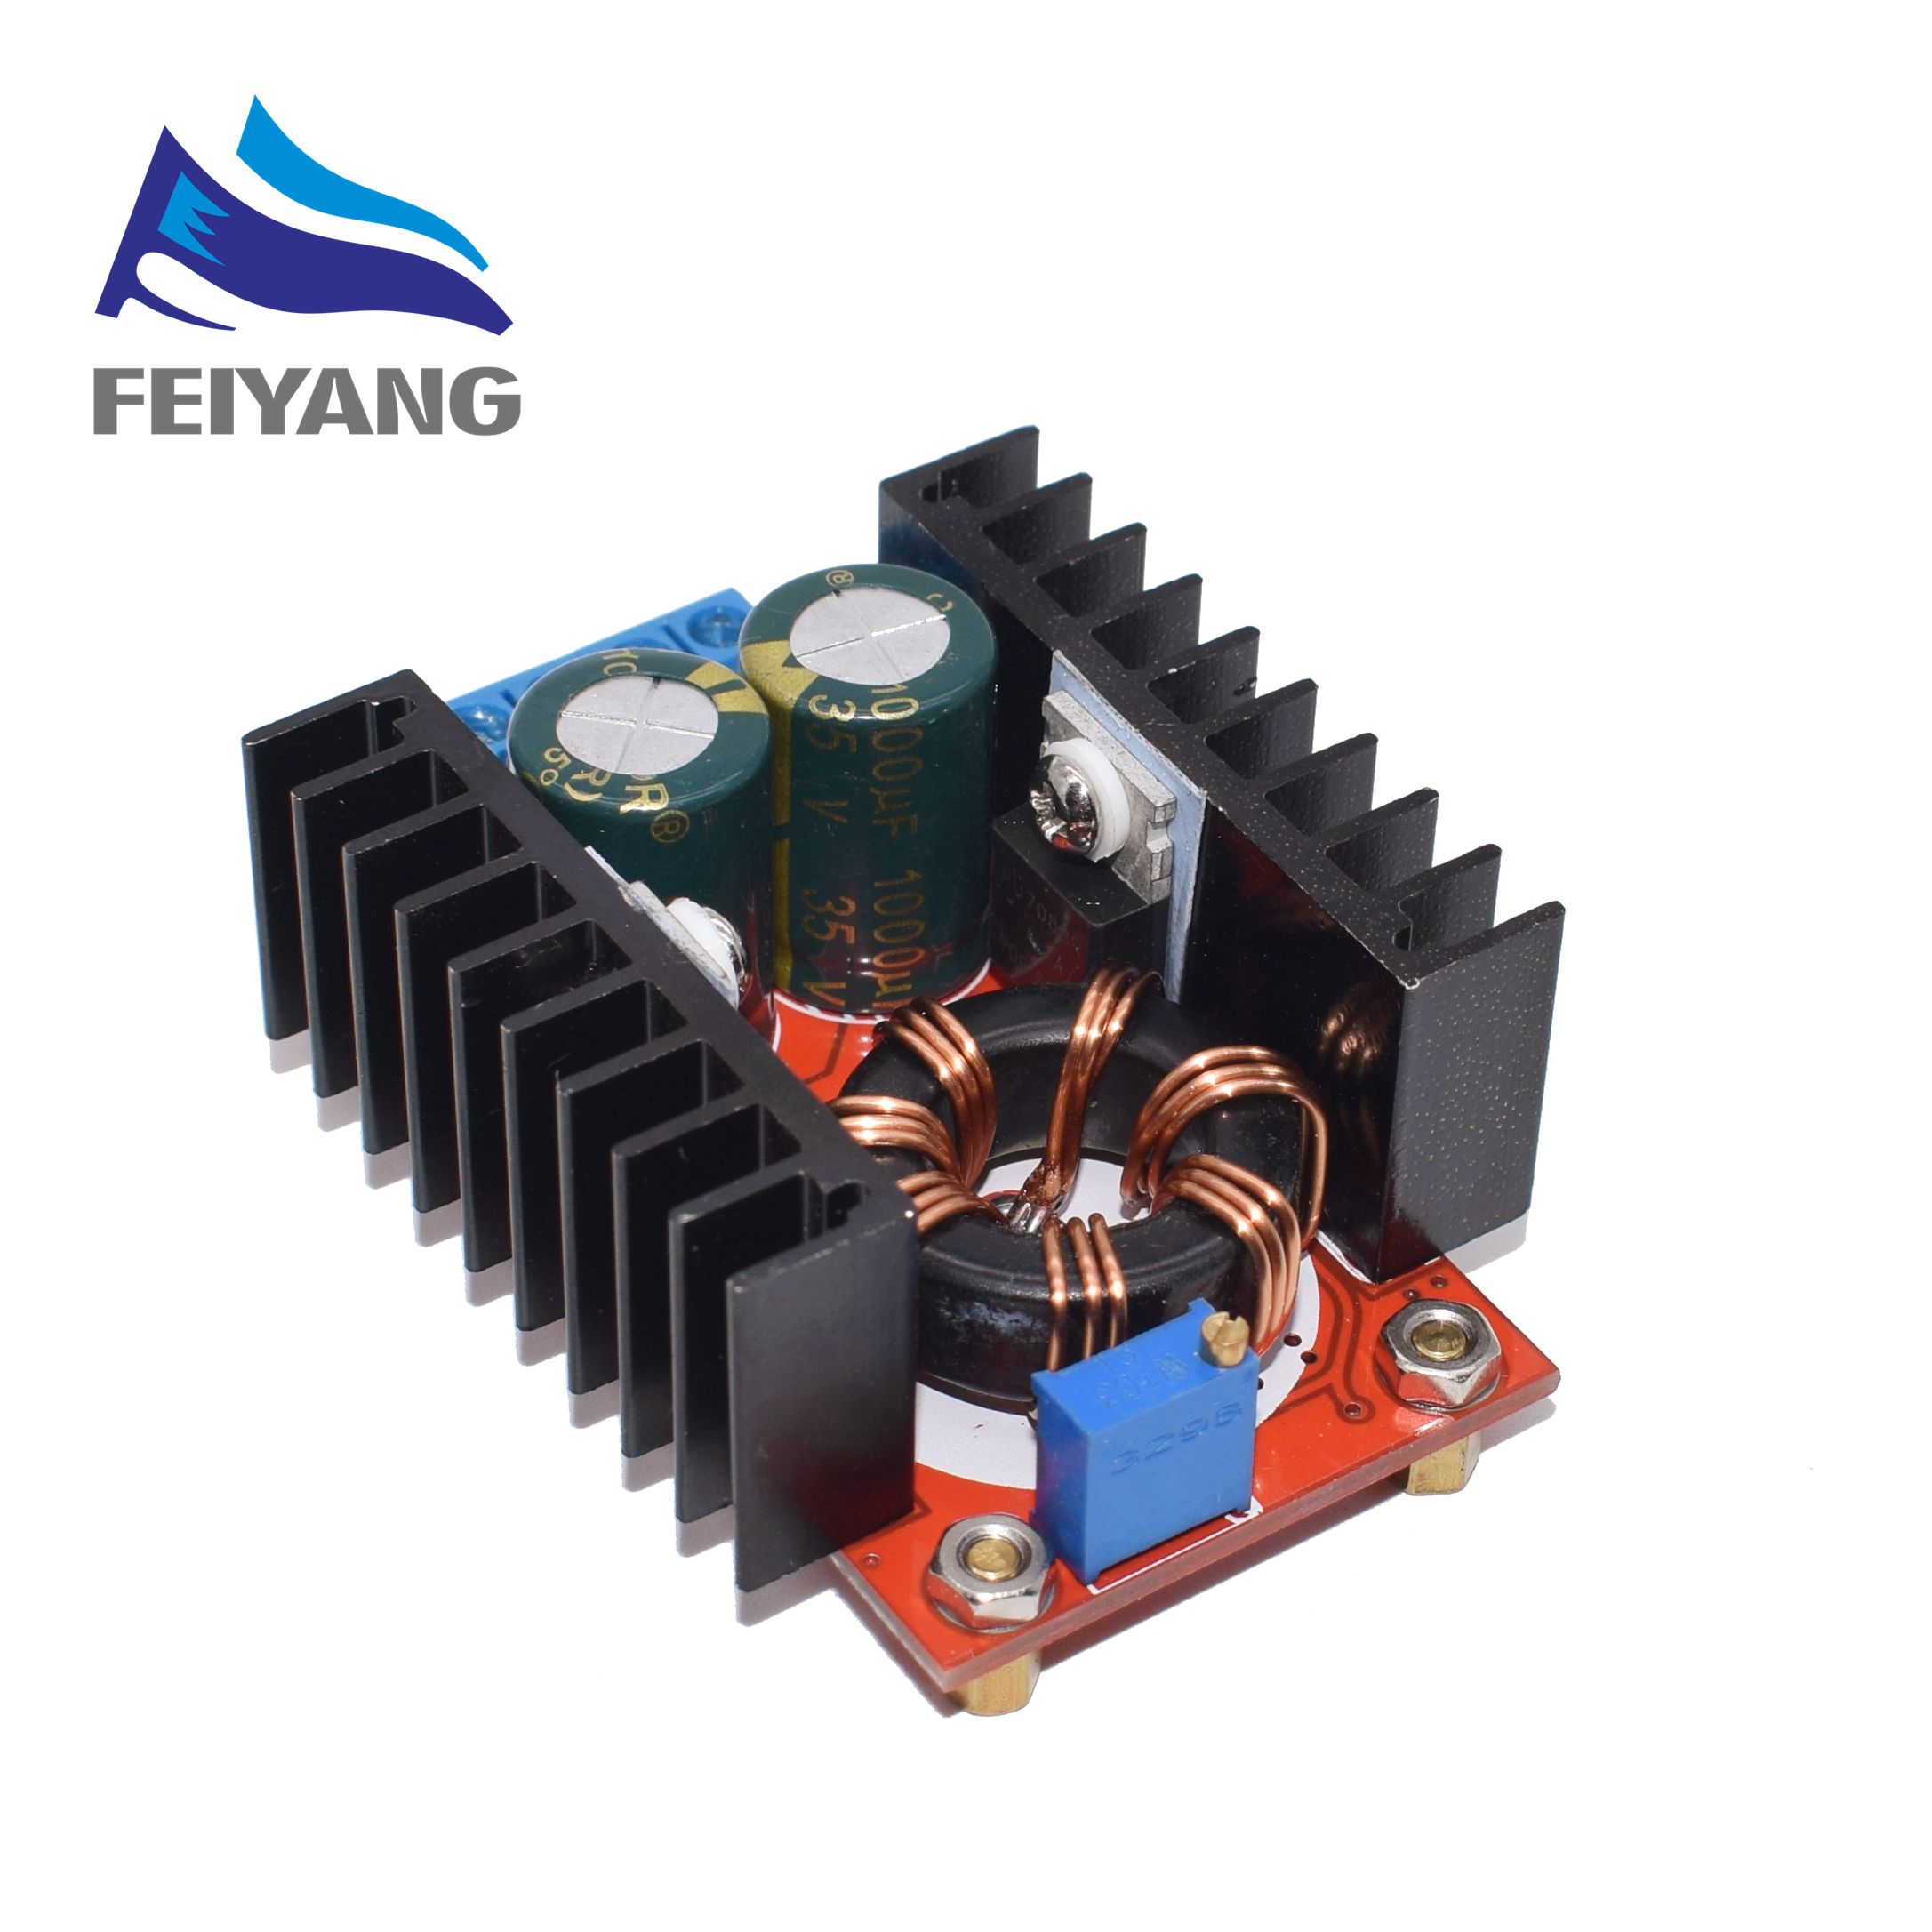 1pcs <font><b>150W</b></font> Boost Converter <font><b>DC</b></font>-<font><b>DC</b></font> 10-32V to 12-35V <font><b>Step</b></font> <font><b>Up</b></font> Voltage Charger Module image